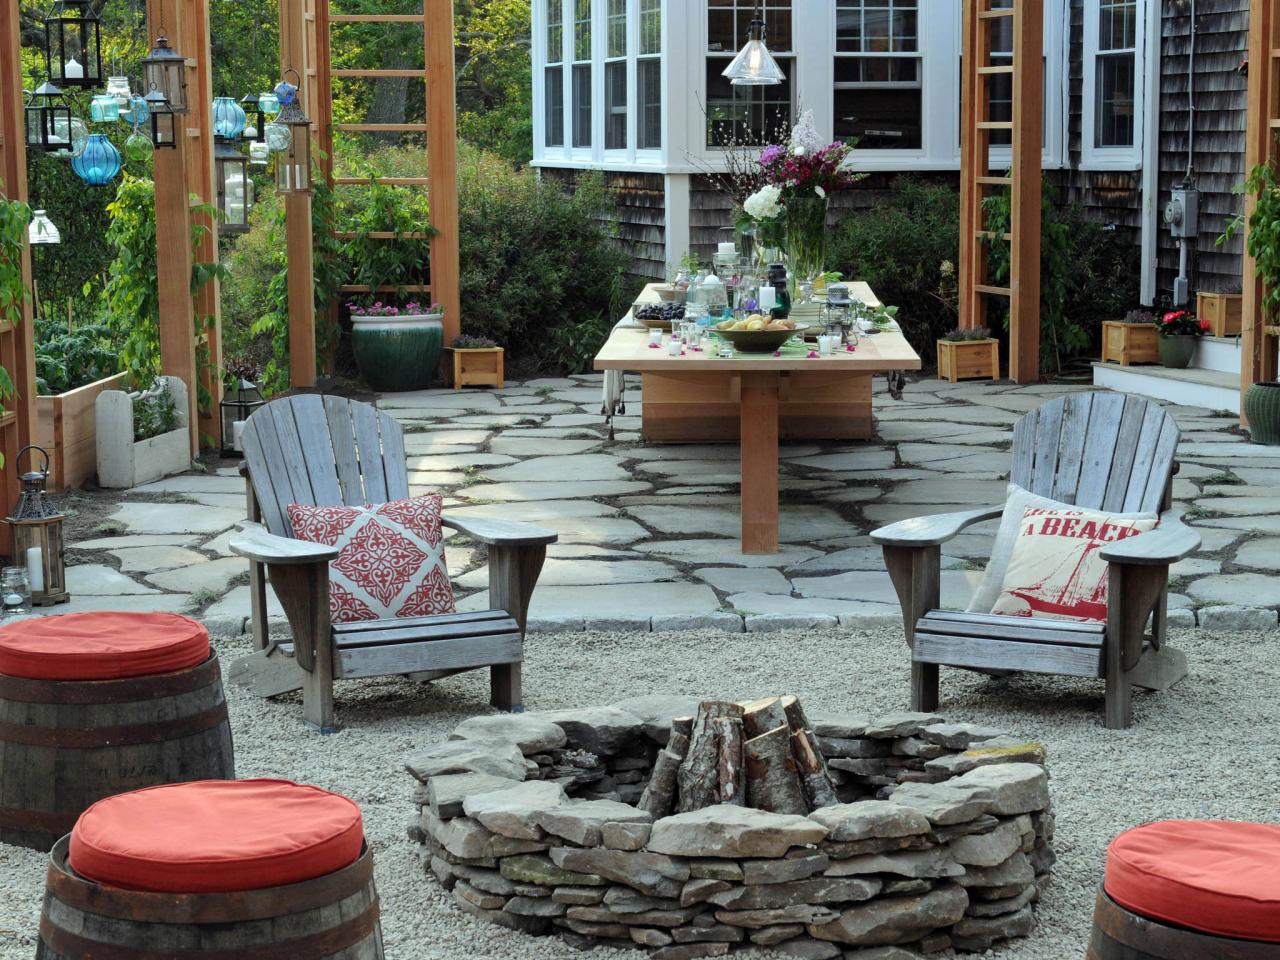 Fire Pit Design Ideas For Backyard Transformation – Wilson Rose Garden